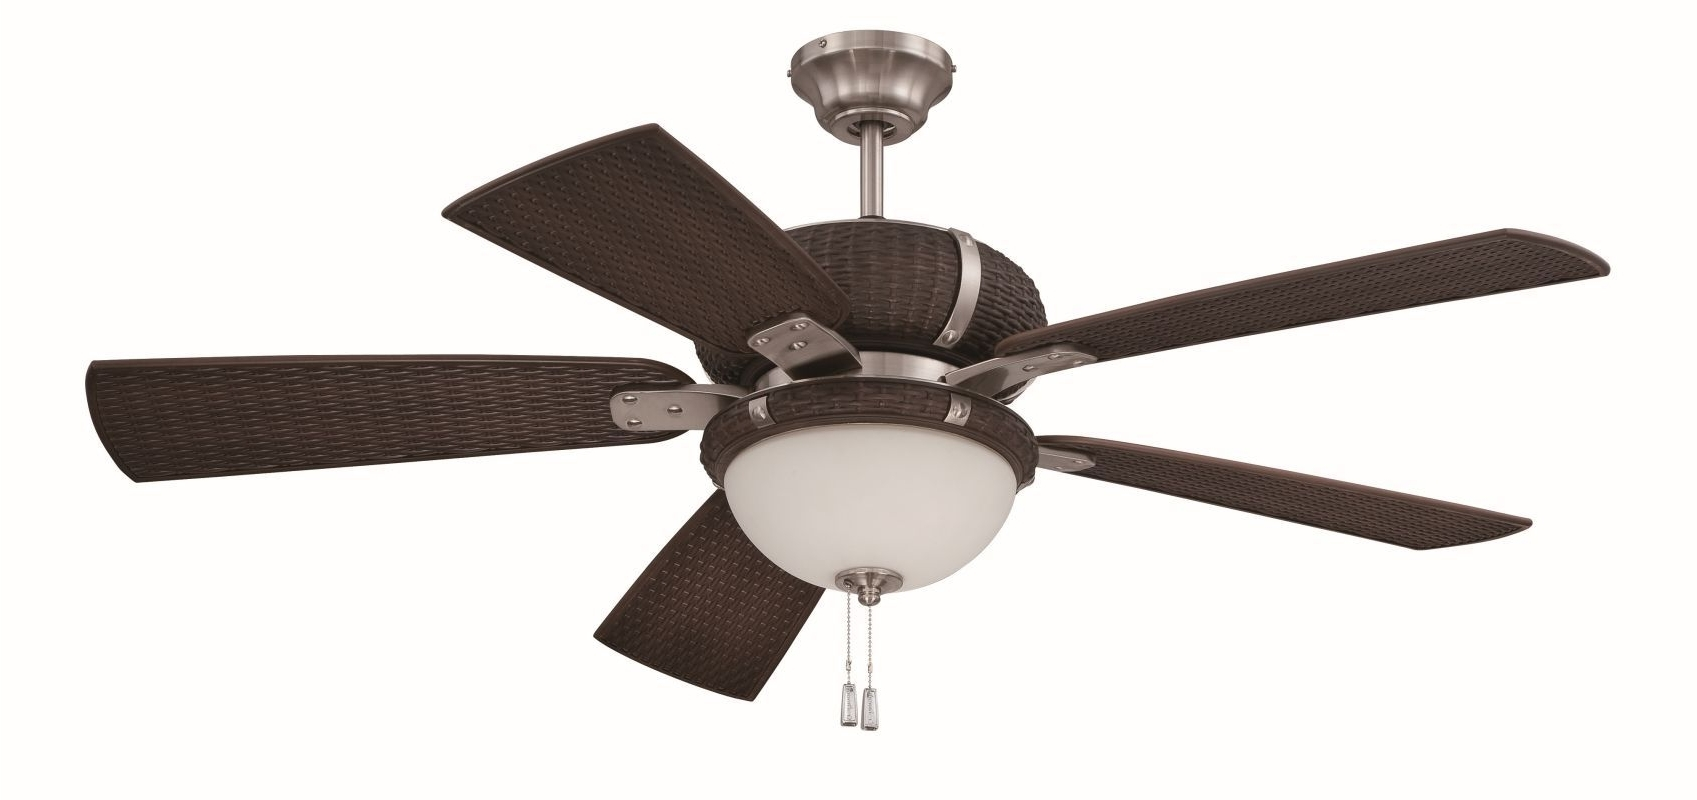 "Wicker Outdoor Ceiling Fans With Lights Regarding Most Popular Craftmade Lap545 La Playa 54"" 5 Blade Outdoor Ceiling Fan – Blades (View 18 of 20)"